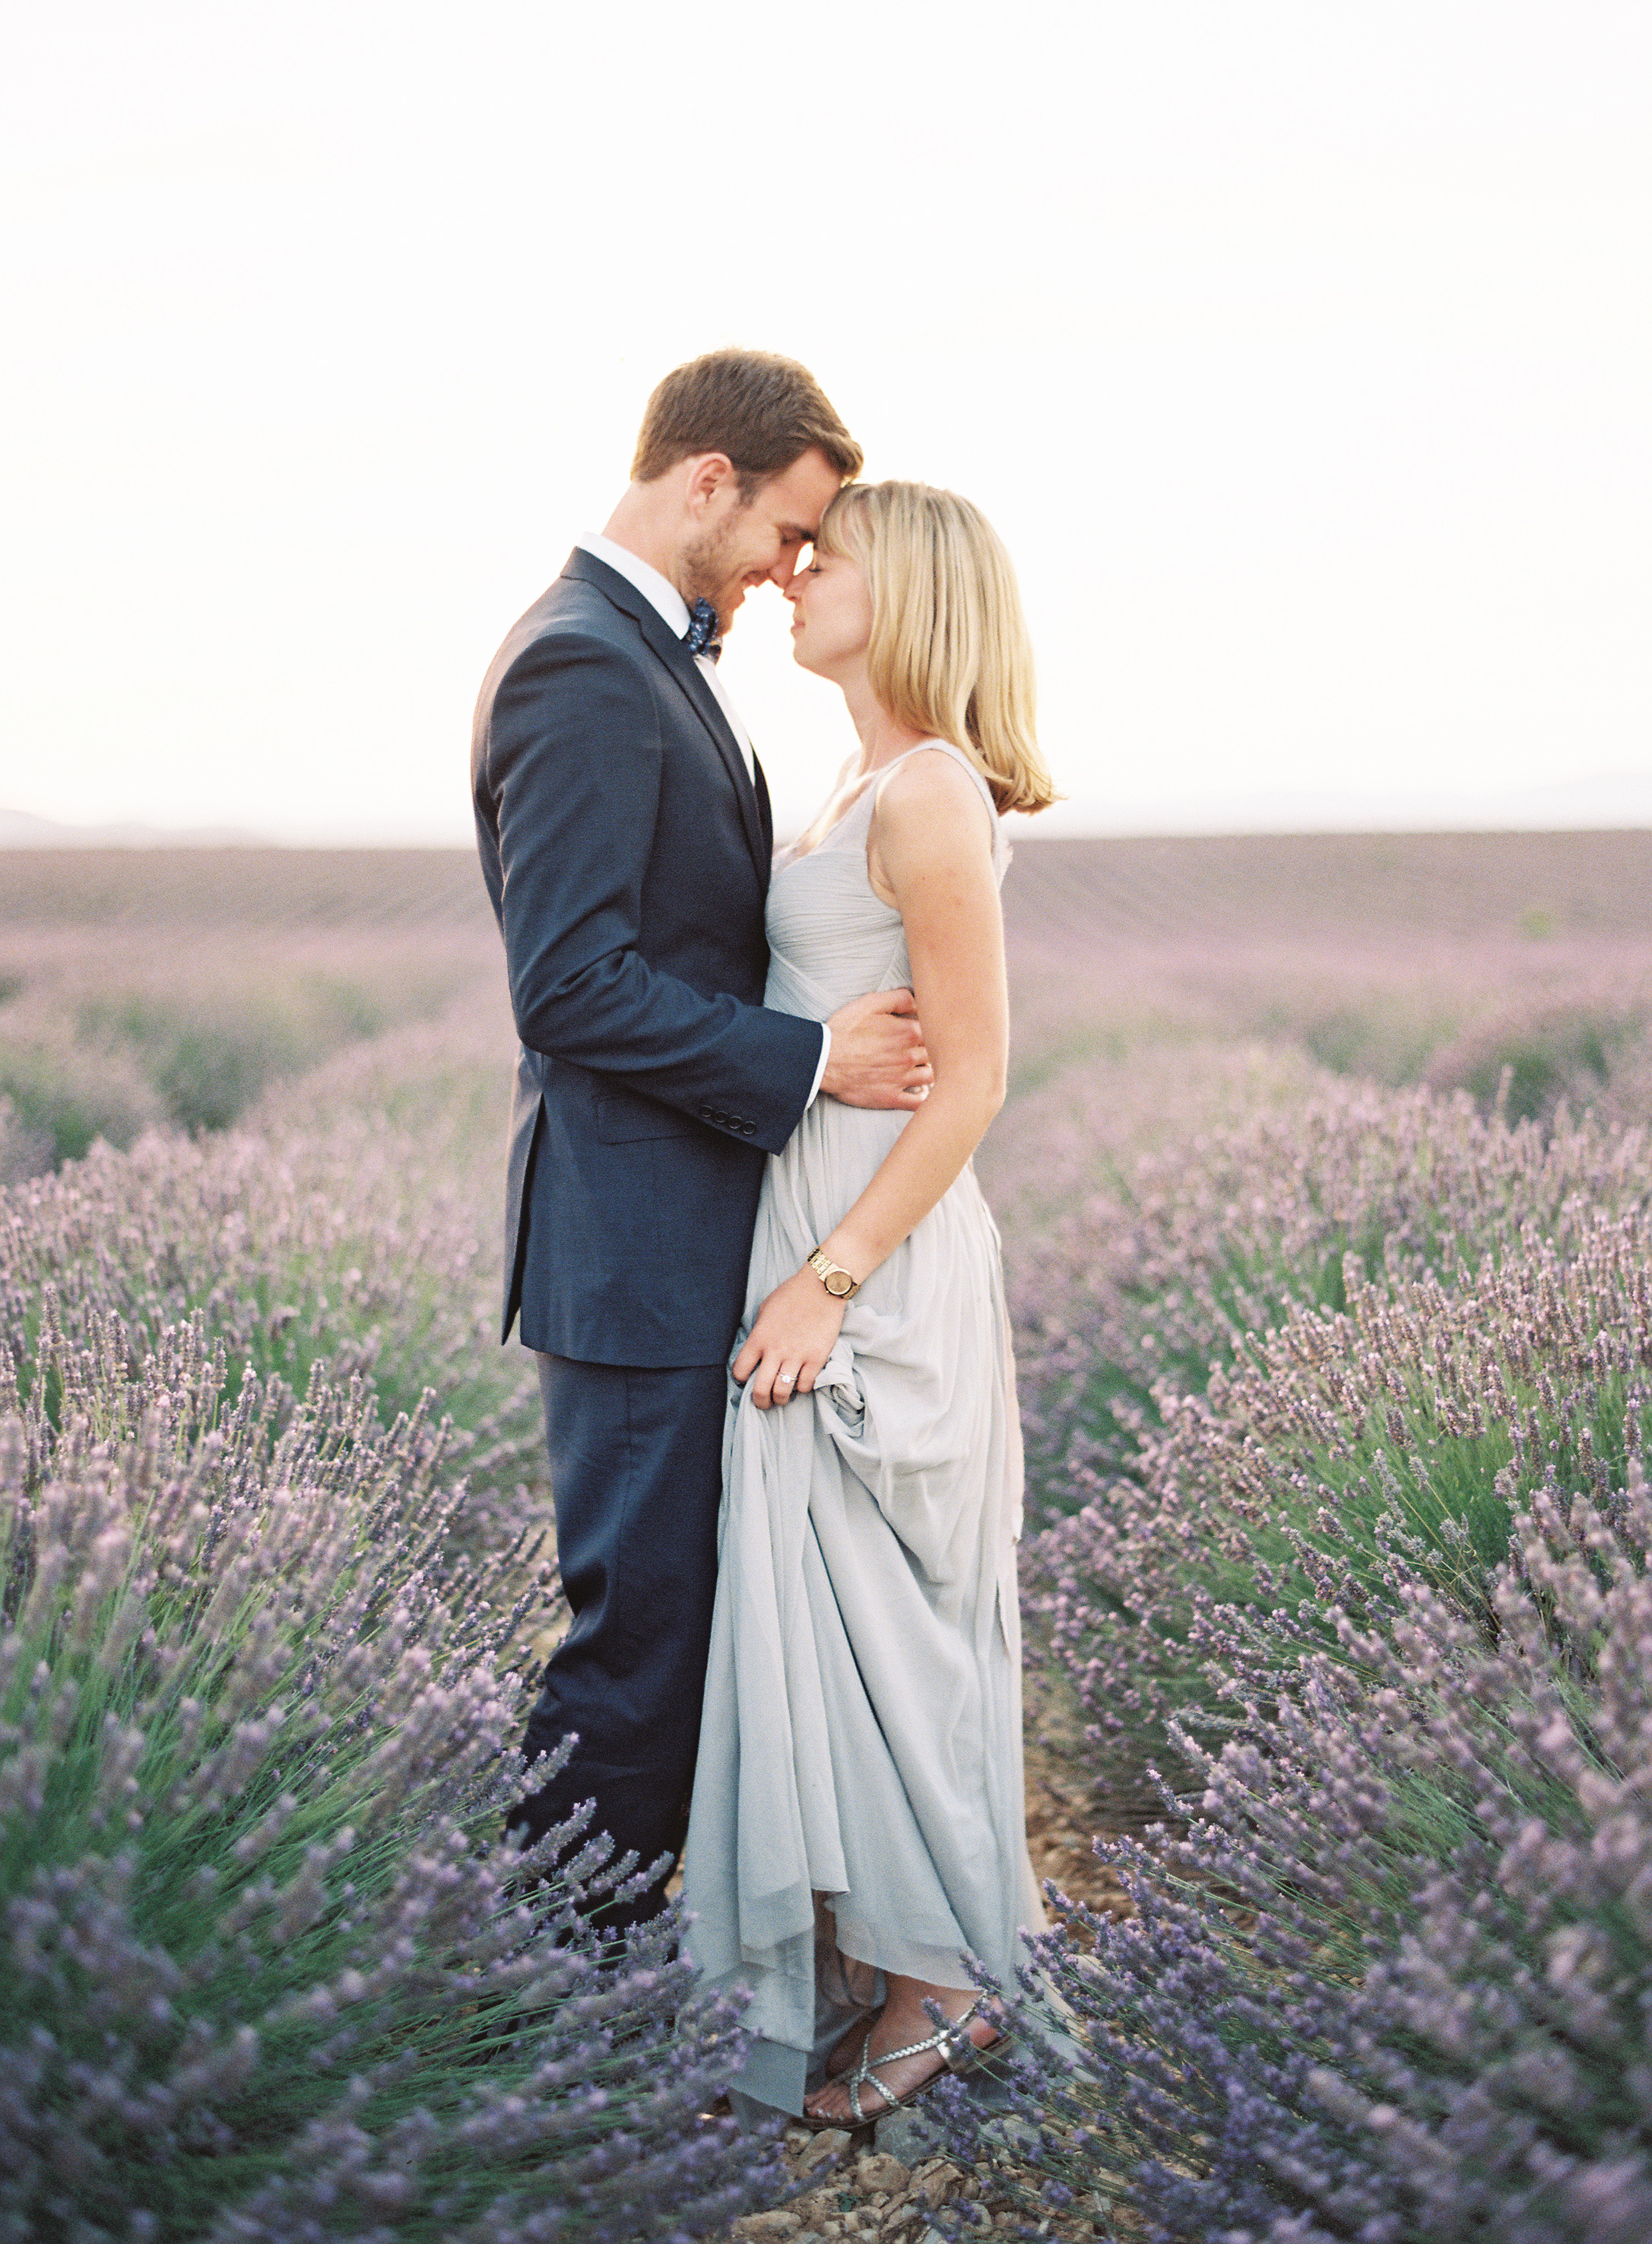 destination engagement couple pose in lavender field france